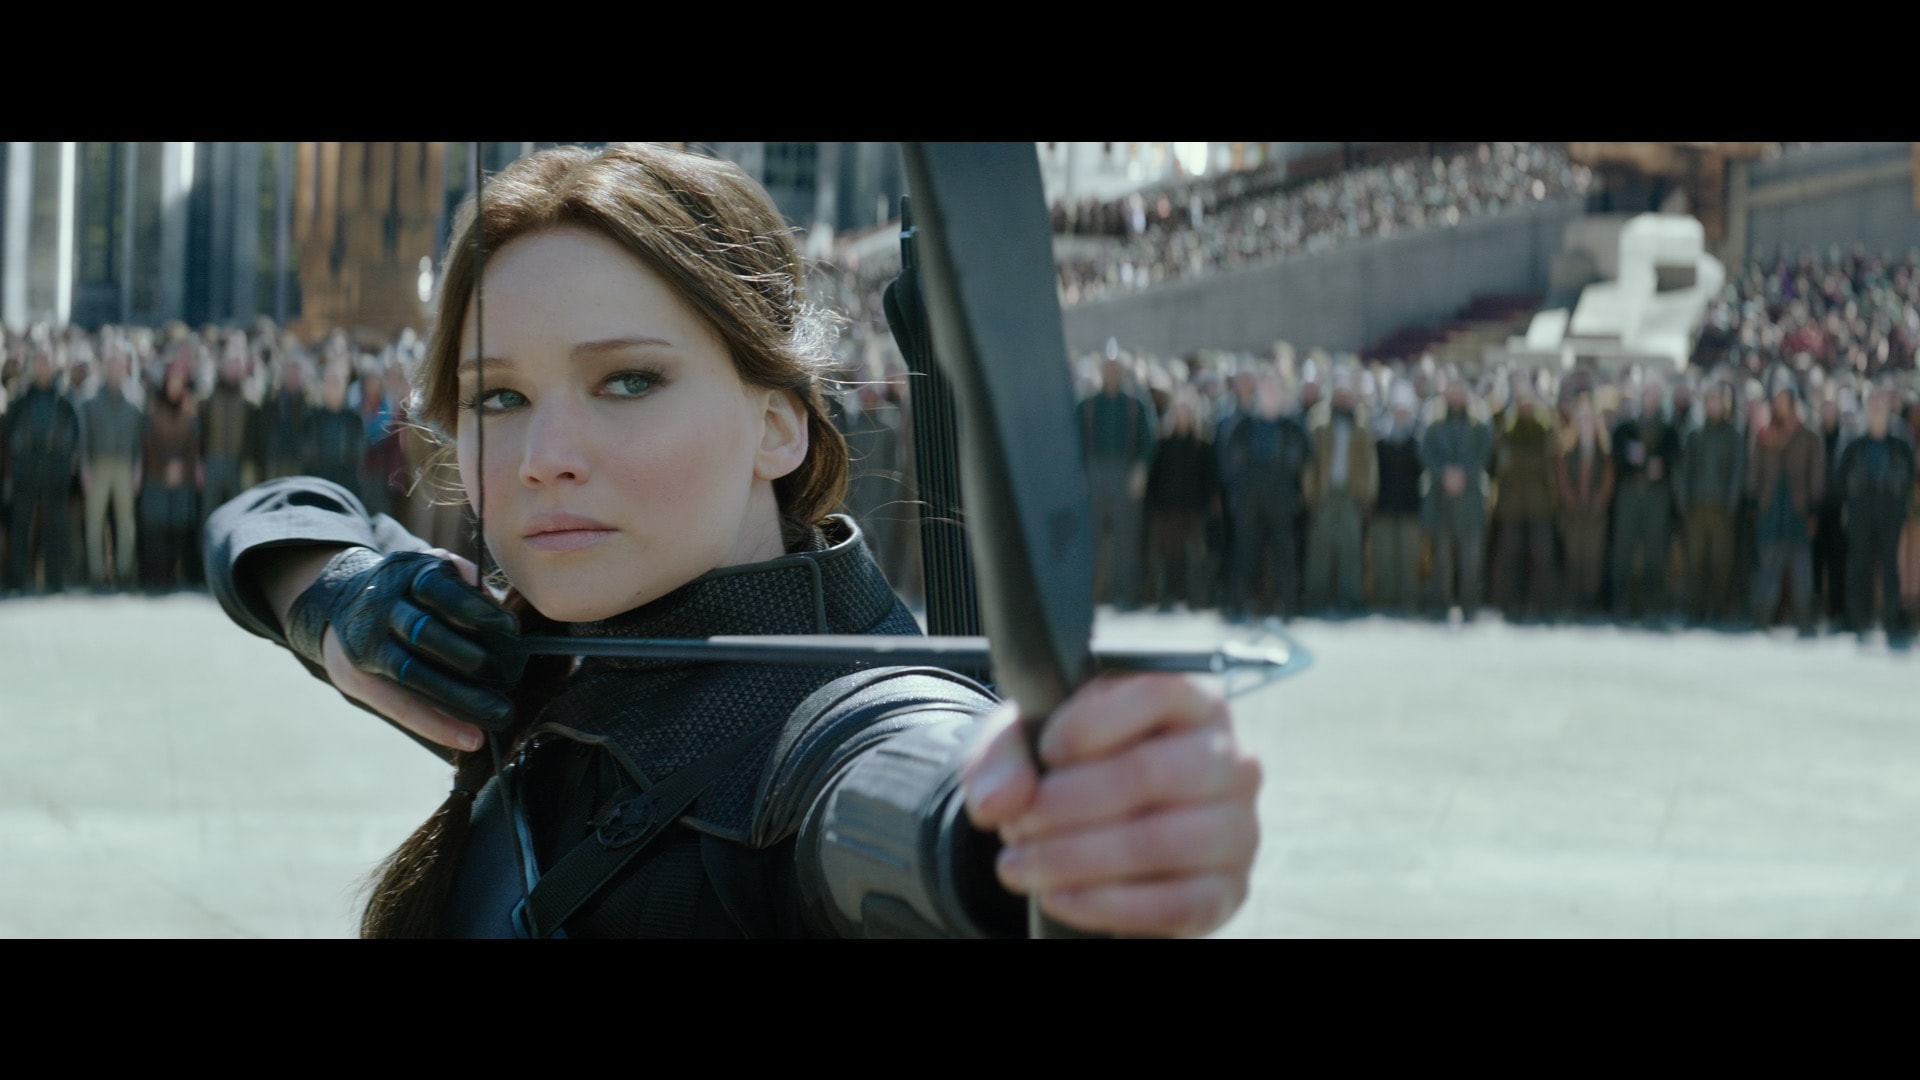 The Hunger Games: Mockingjay - Part 2 Backgrounds